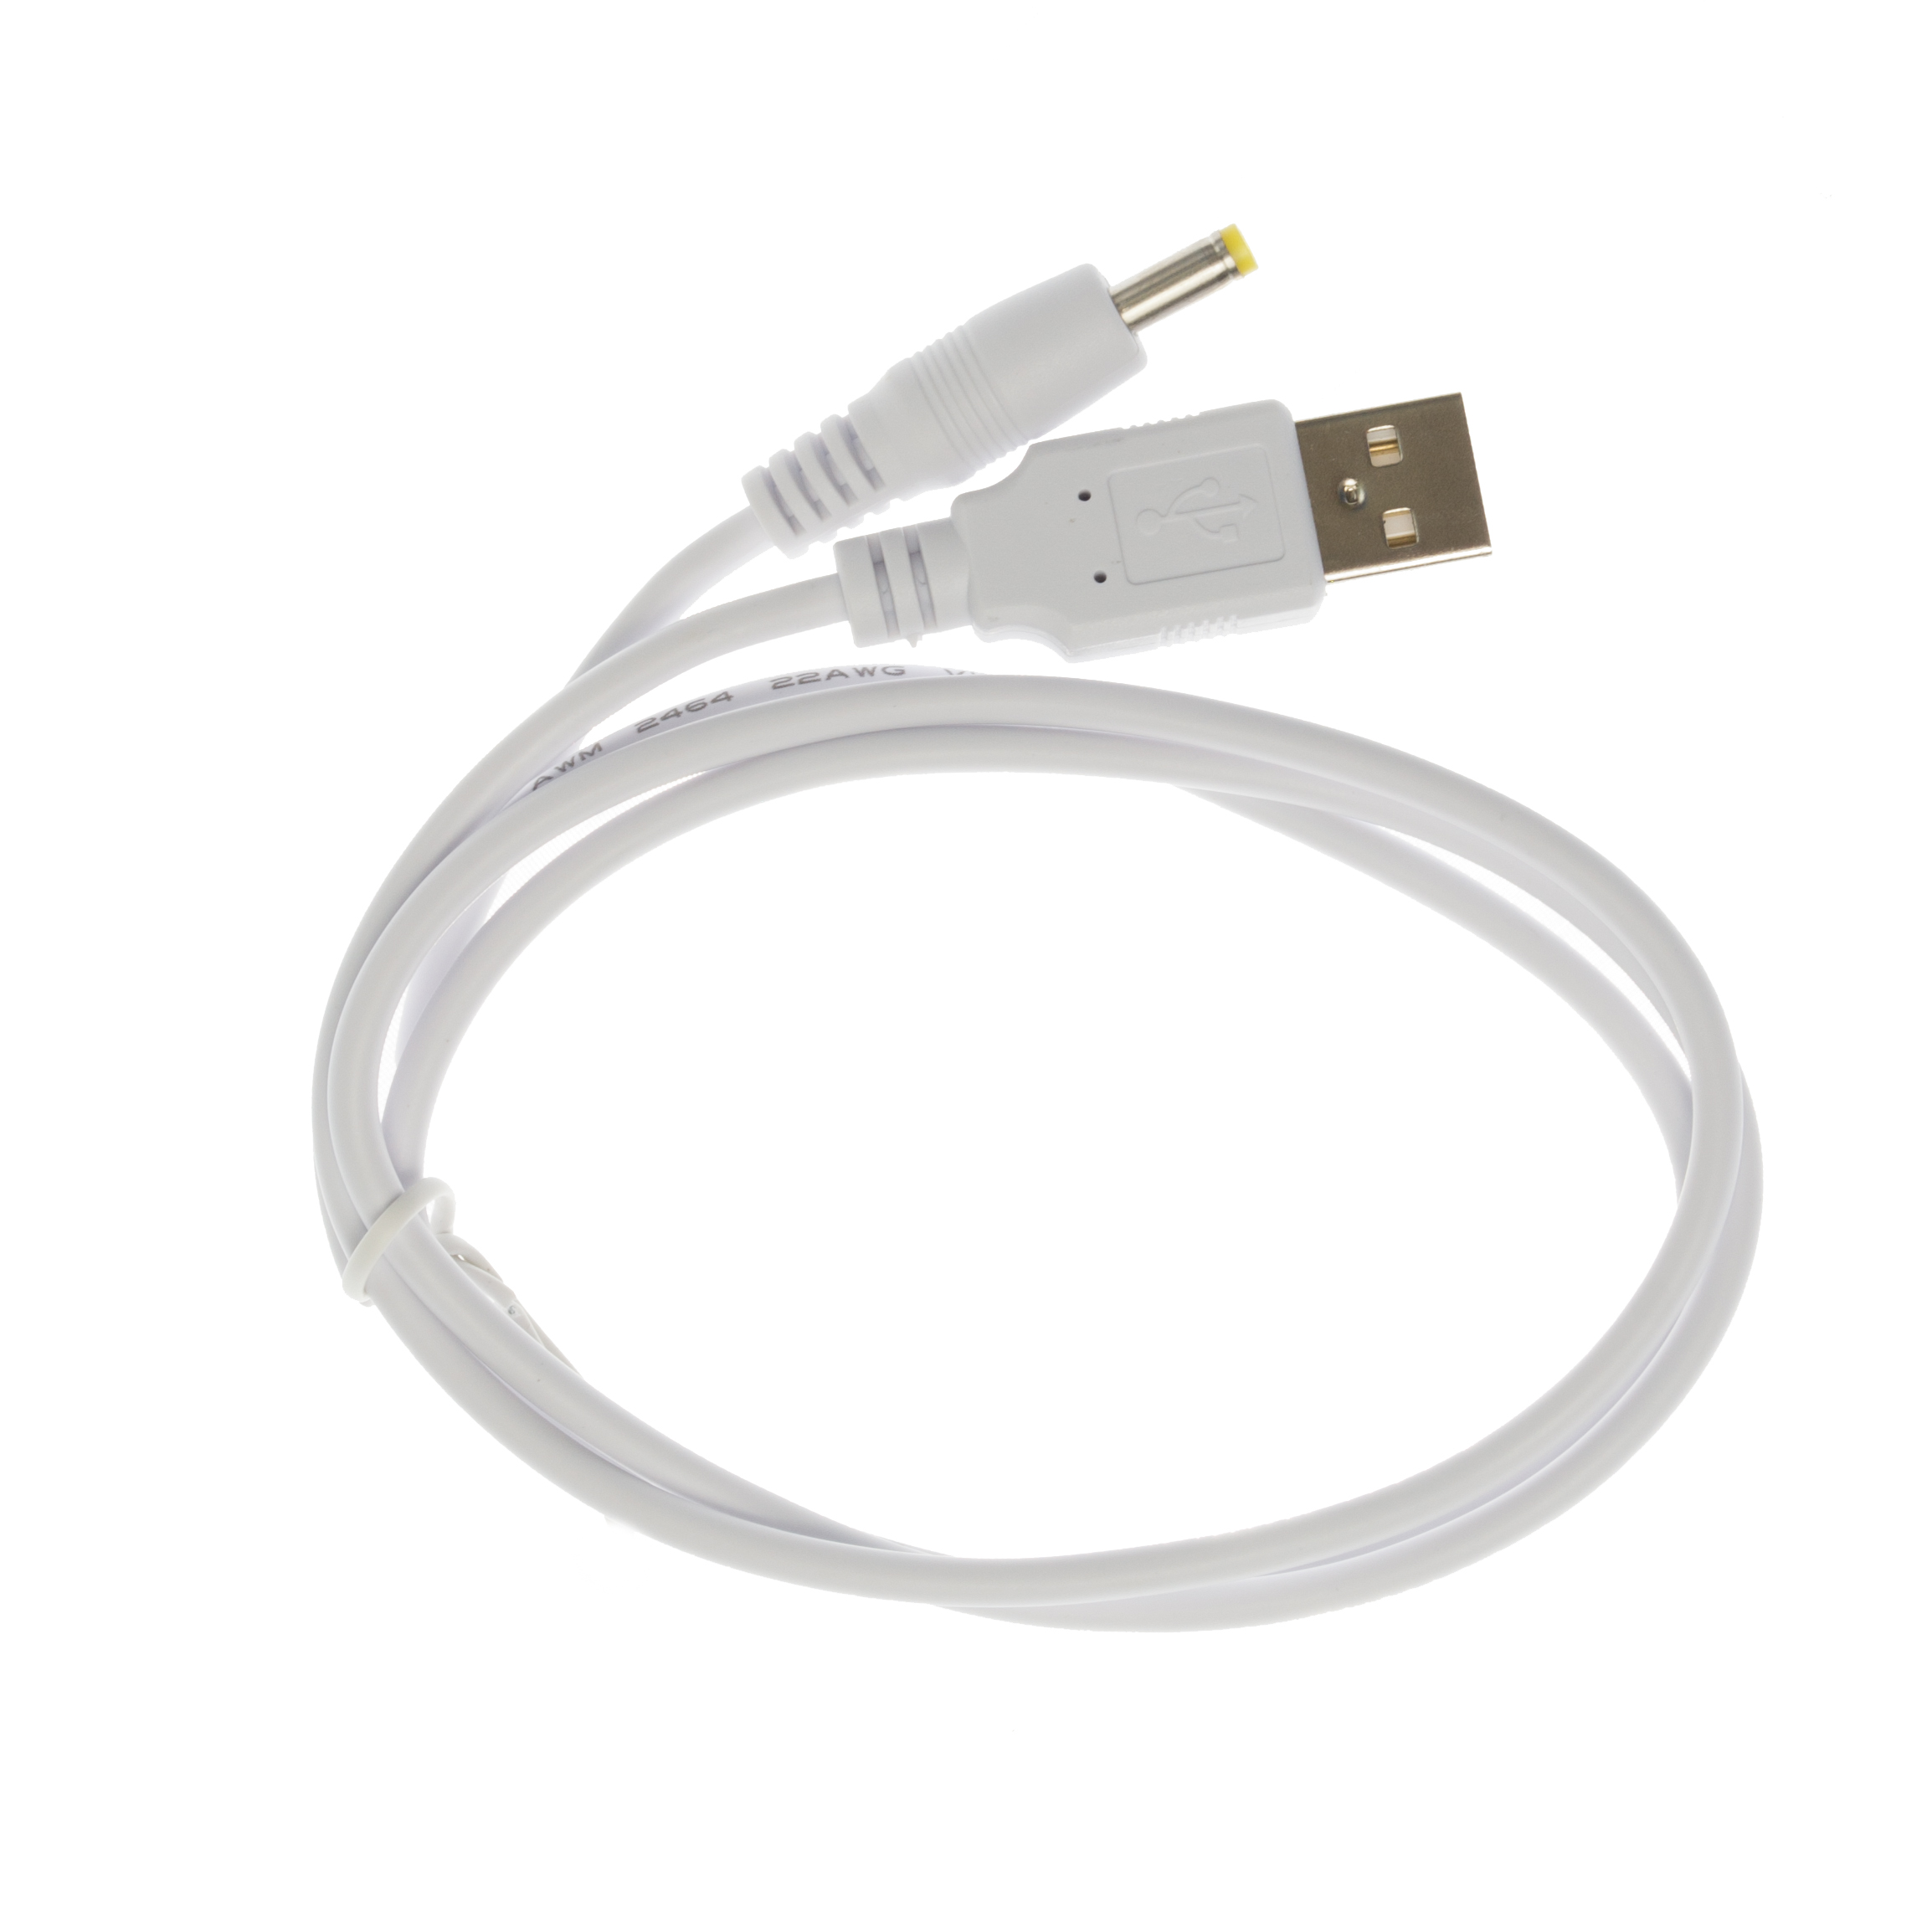 90cm-USB-5V-White-Charger-Power-Cable-Adaptor-for-Exposure-Diablo-MK7-Bike-Light